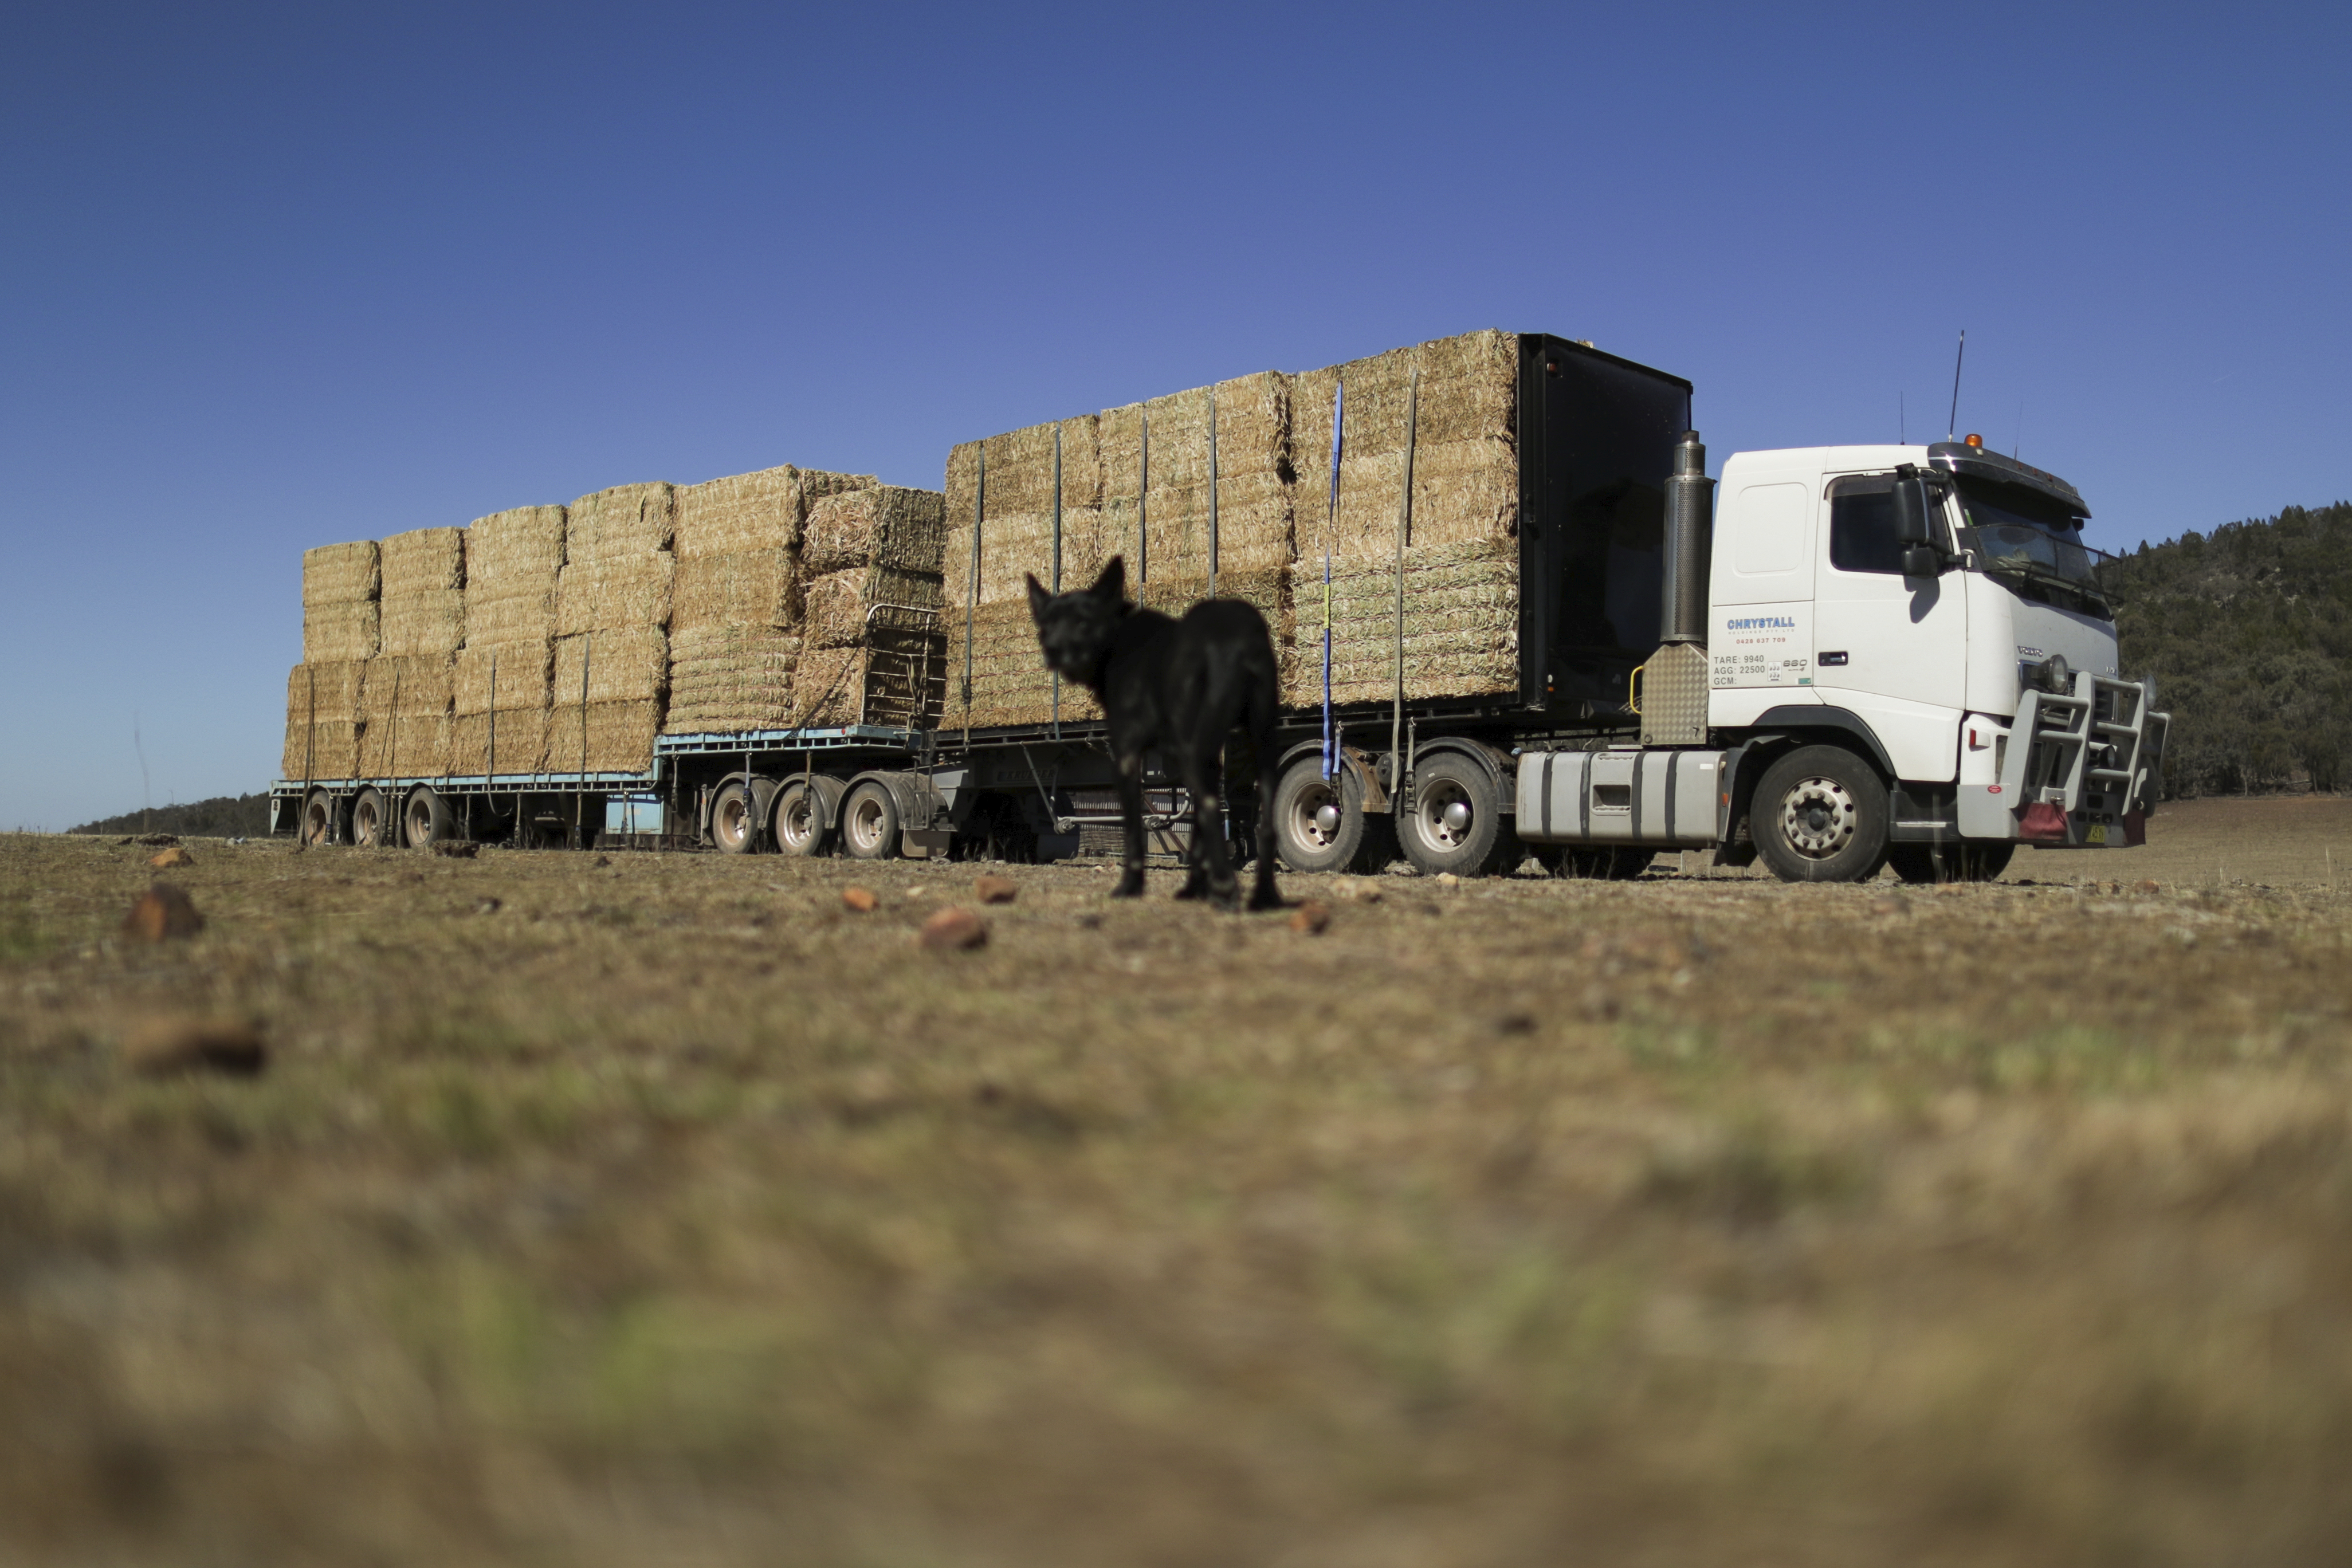 A truck delivers hay to Rob Lee's property as his dog Monty looks on, at Larras Lee in central west NSW.  Photo: Alex Ellinghausen Thursday 7 November 2019. (AFR for Tom McIlroy)